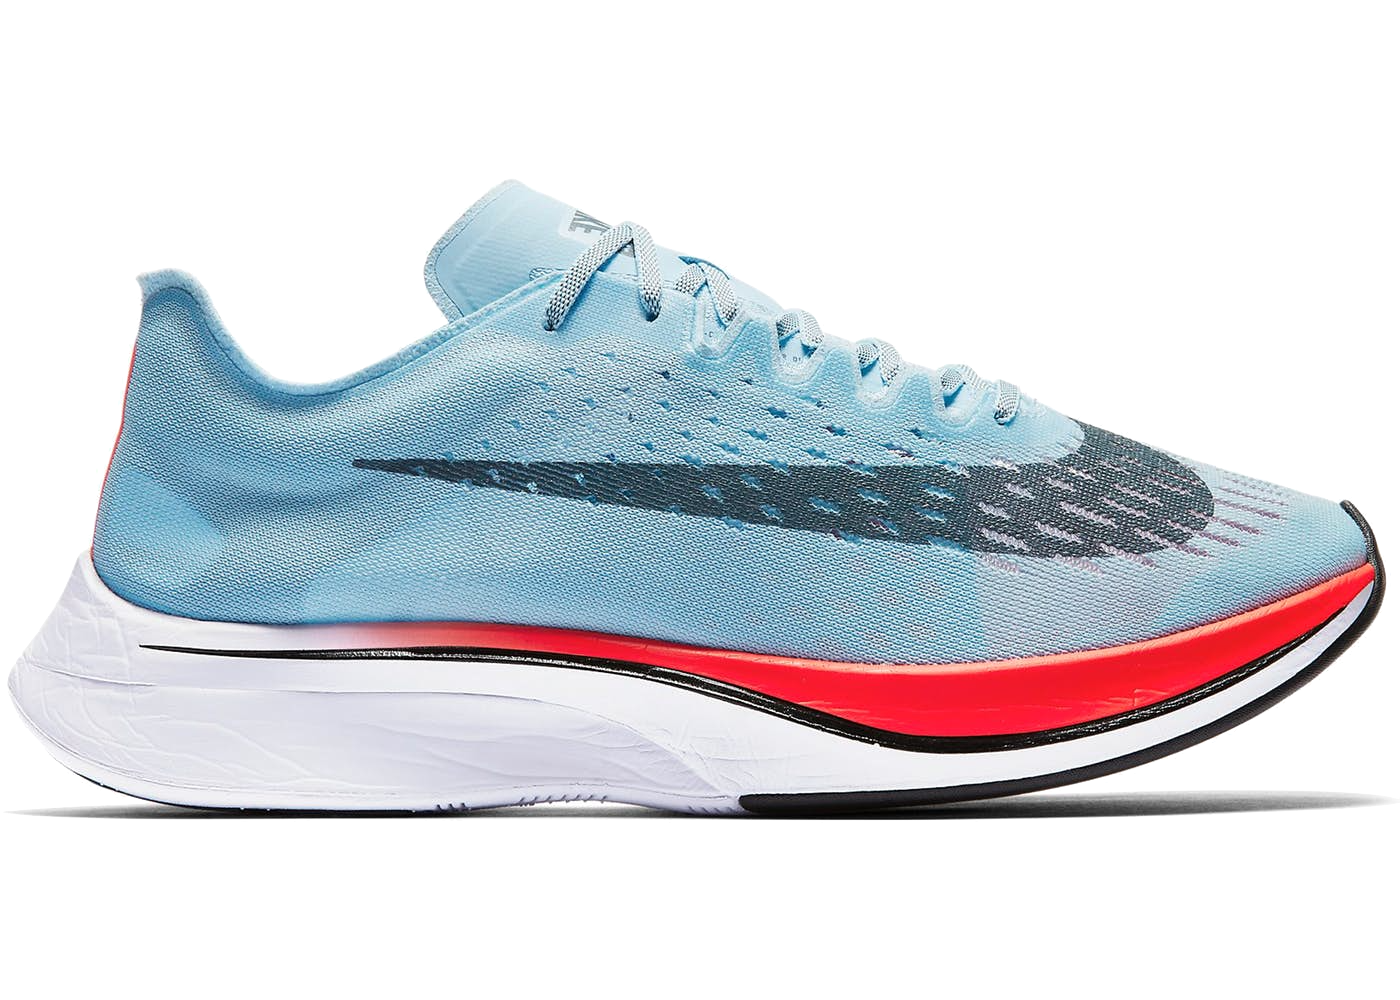 1108f71ff3d93 Nike Zoom Vaporfly 4% - Does it really make you 4% faster